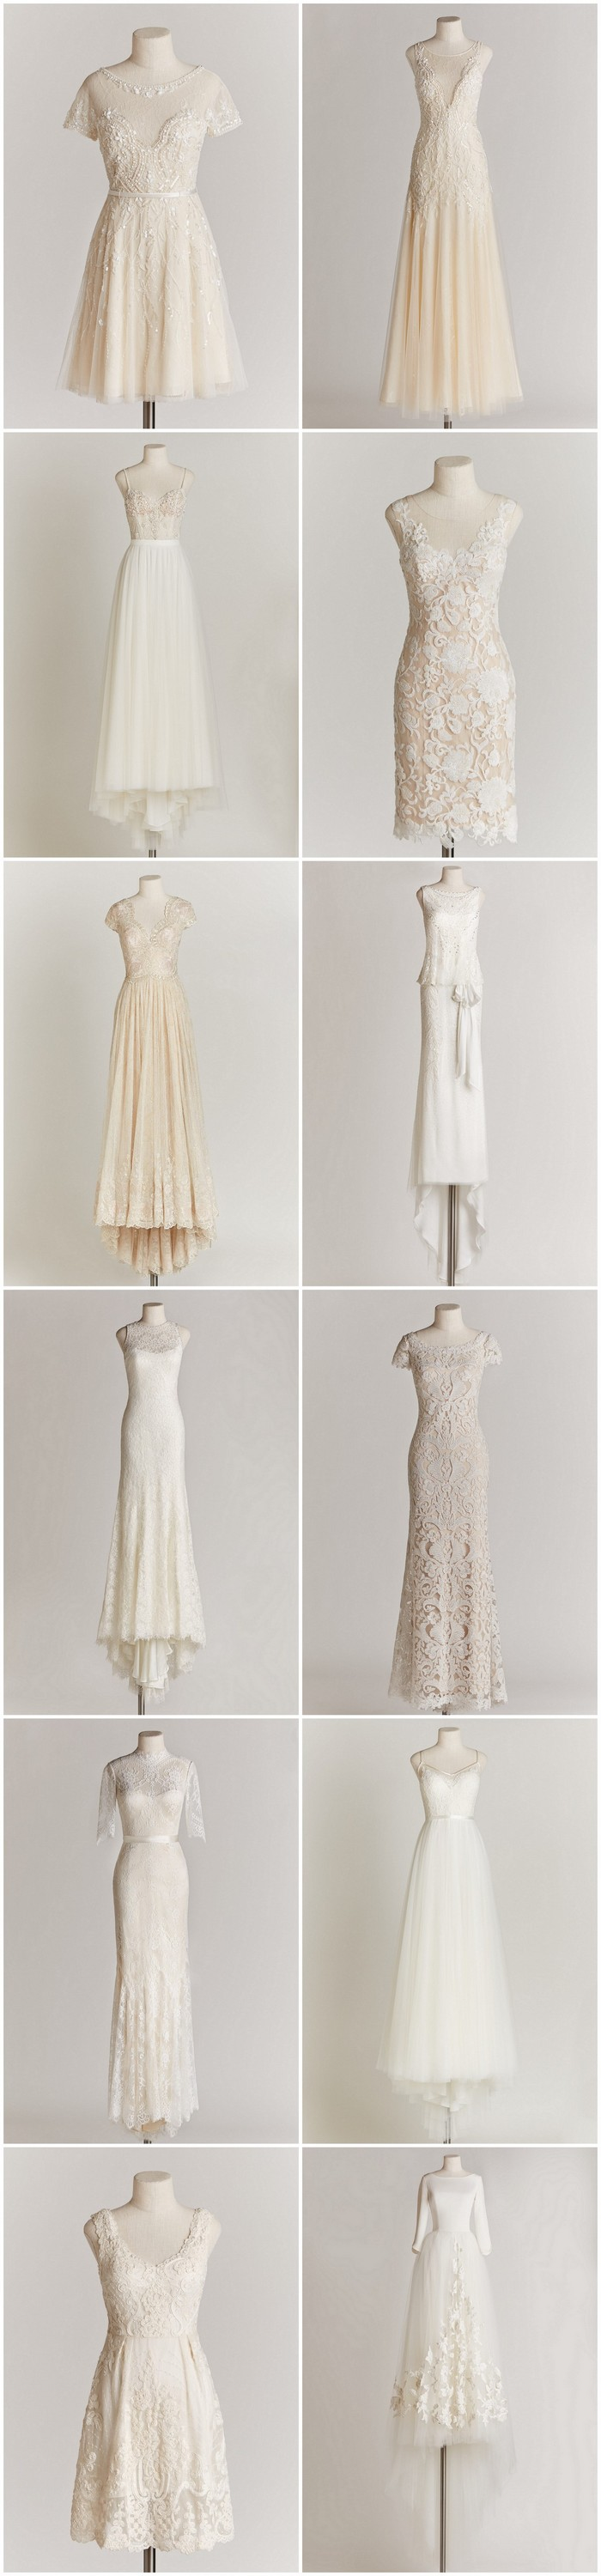 Chic Sophisticated Wedding Dresses for the Refined Romantic